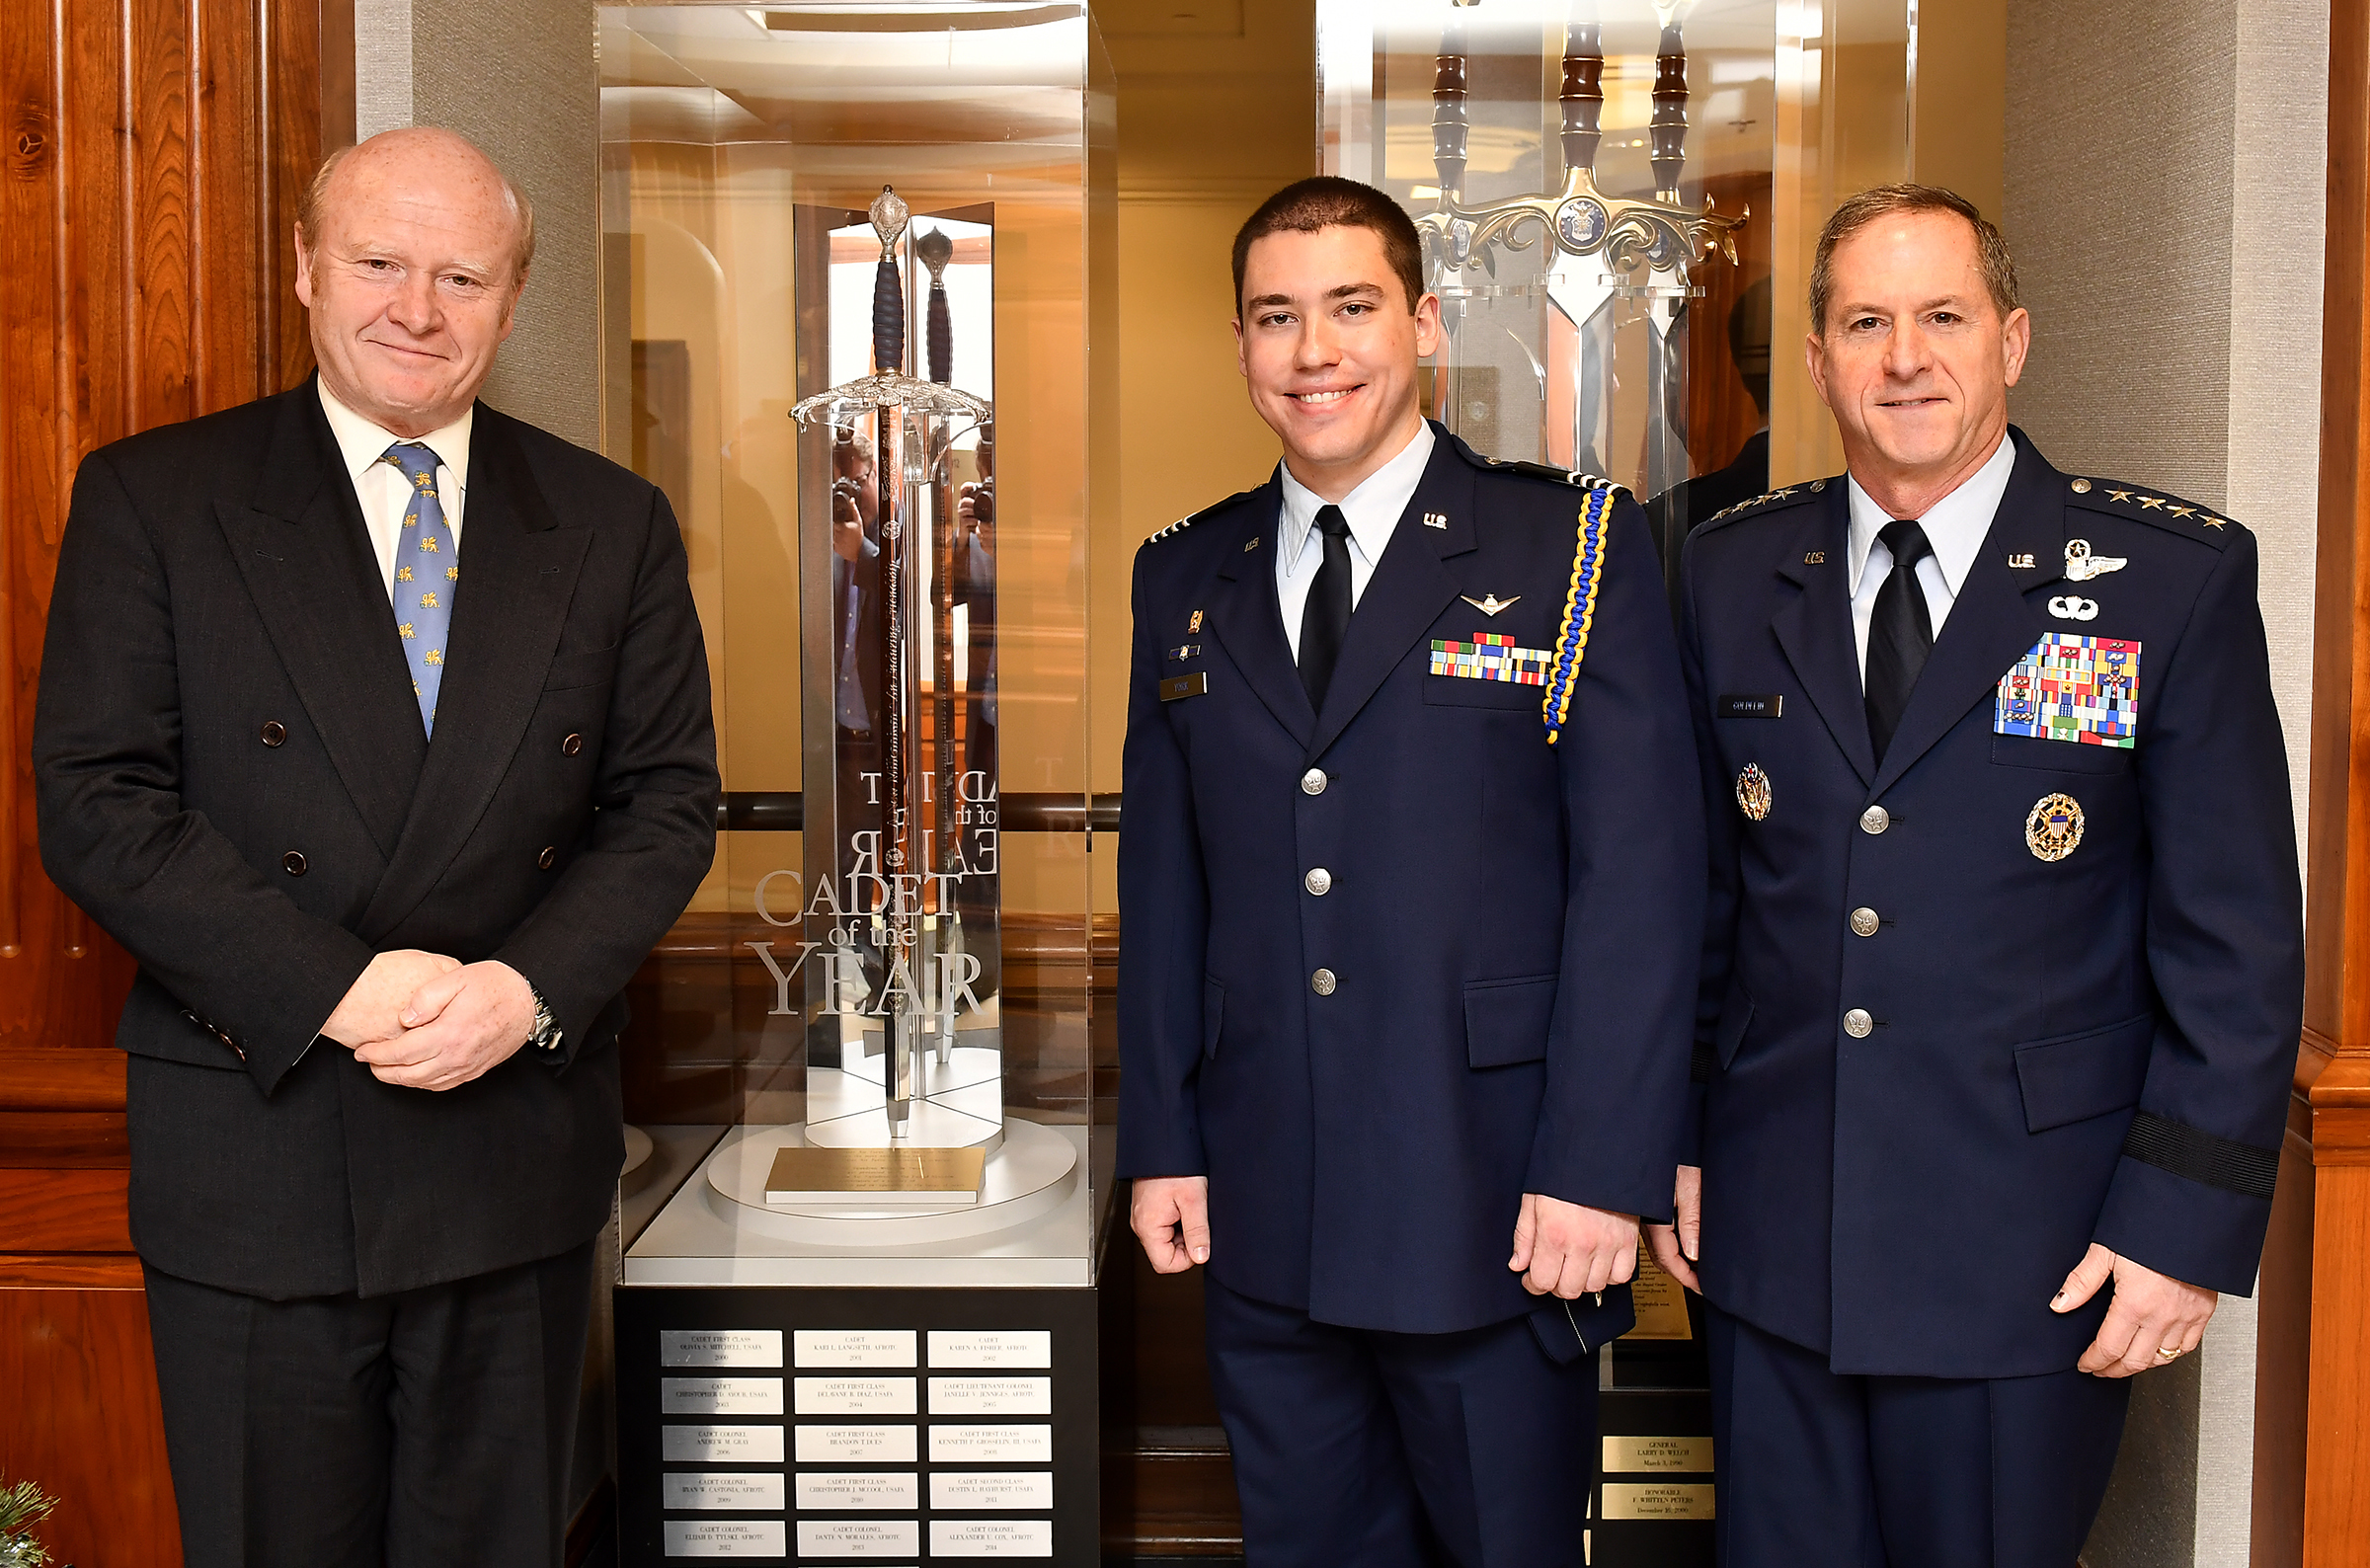 cadets dating officers